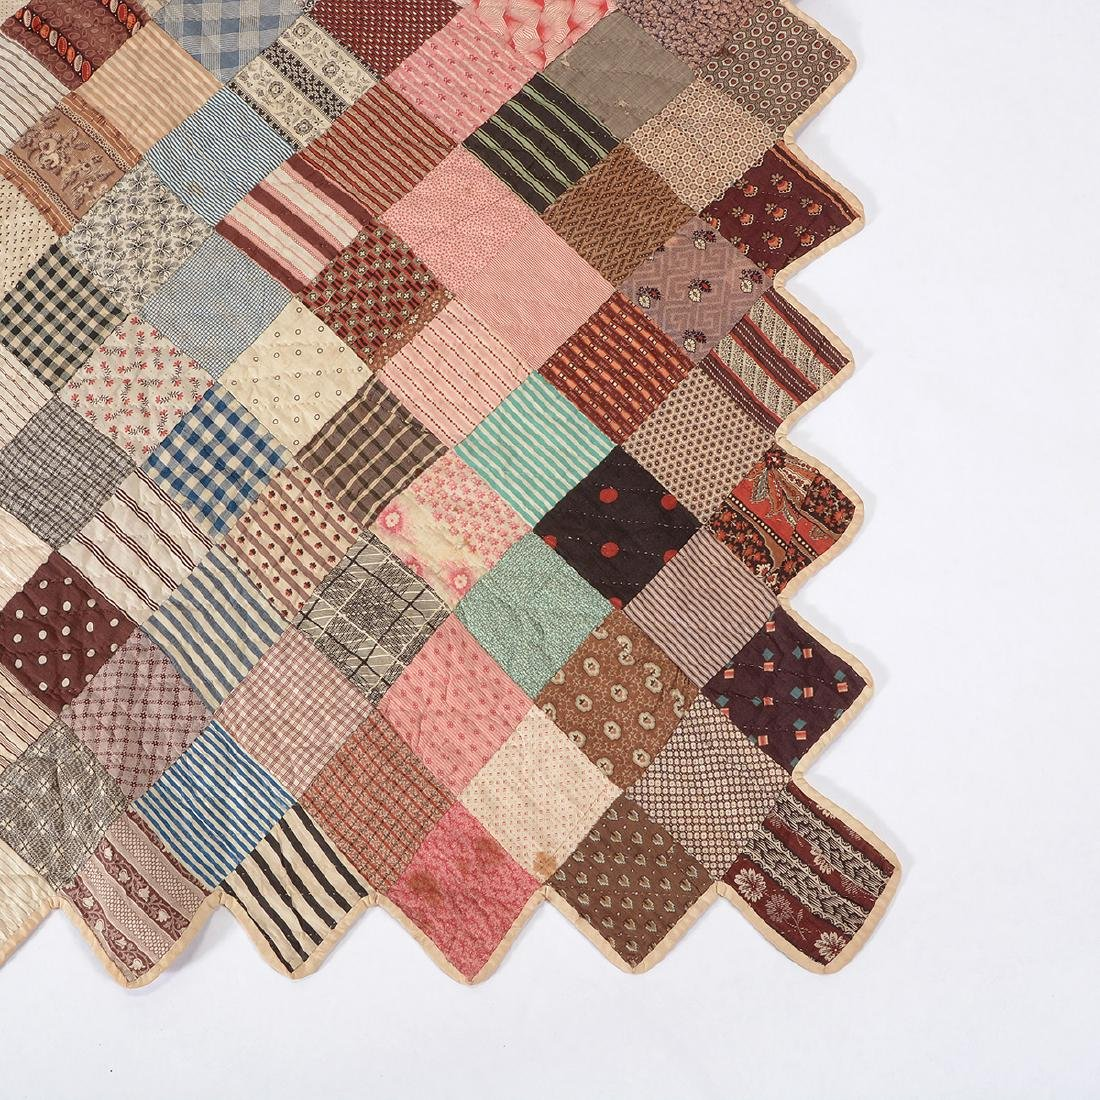 Diamond Quilt by Abbie B. Sweetsea, 1874 - 2